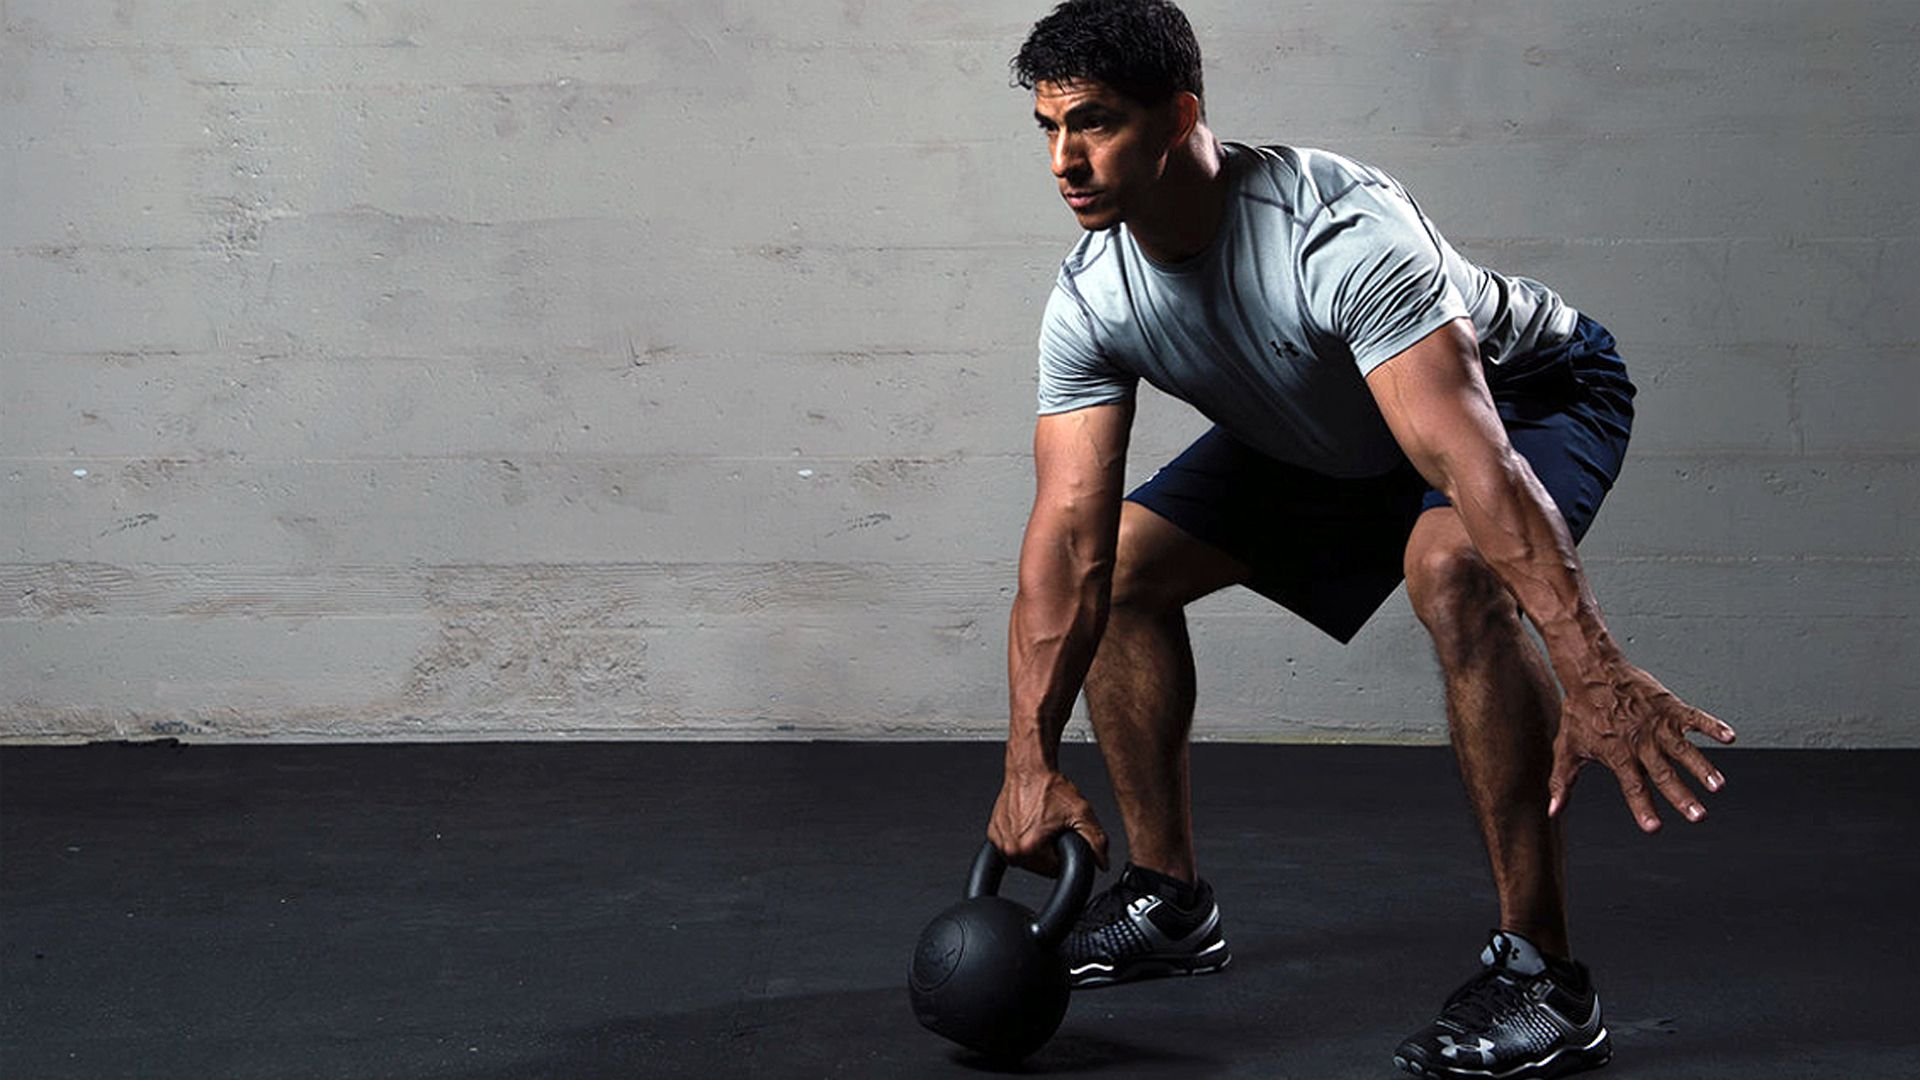 Man working out with a kettlebell